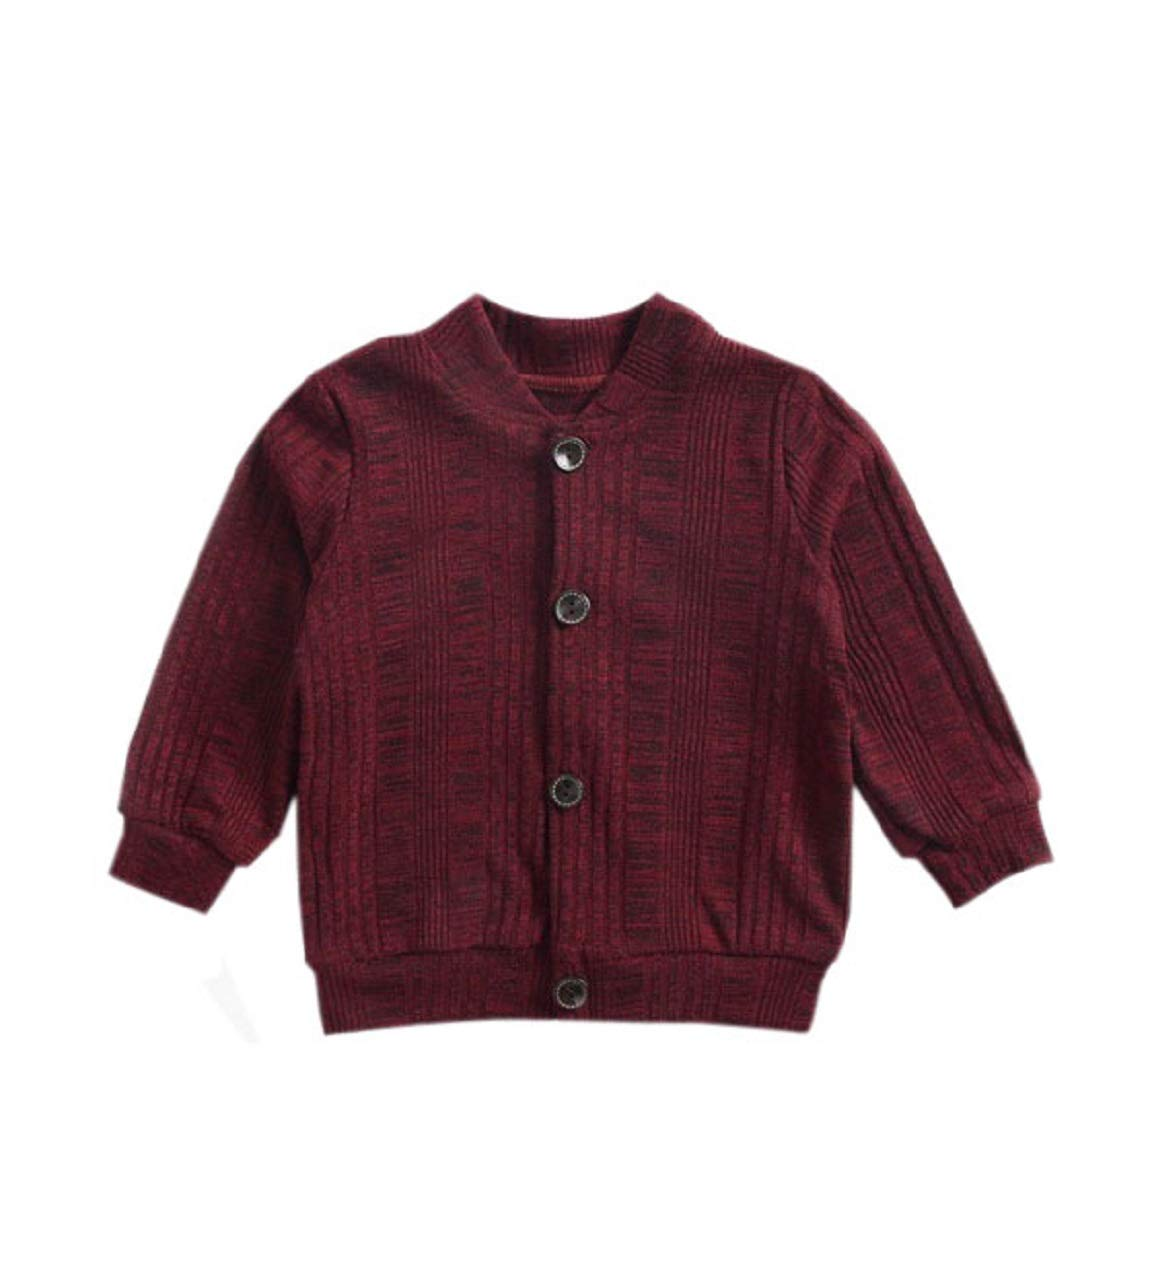 ACVIP Little Girl's Cotton Knit Button Down Solid Color Cardigan (Burgandy,3-4Y)